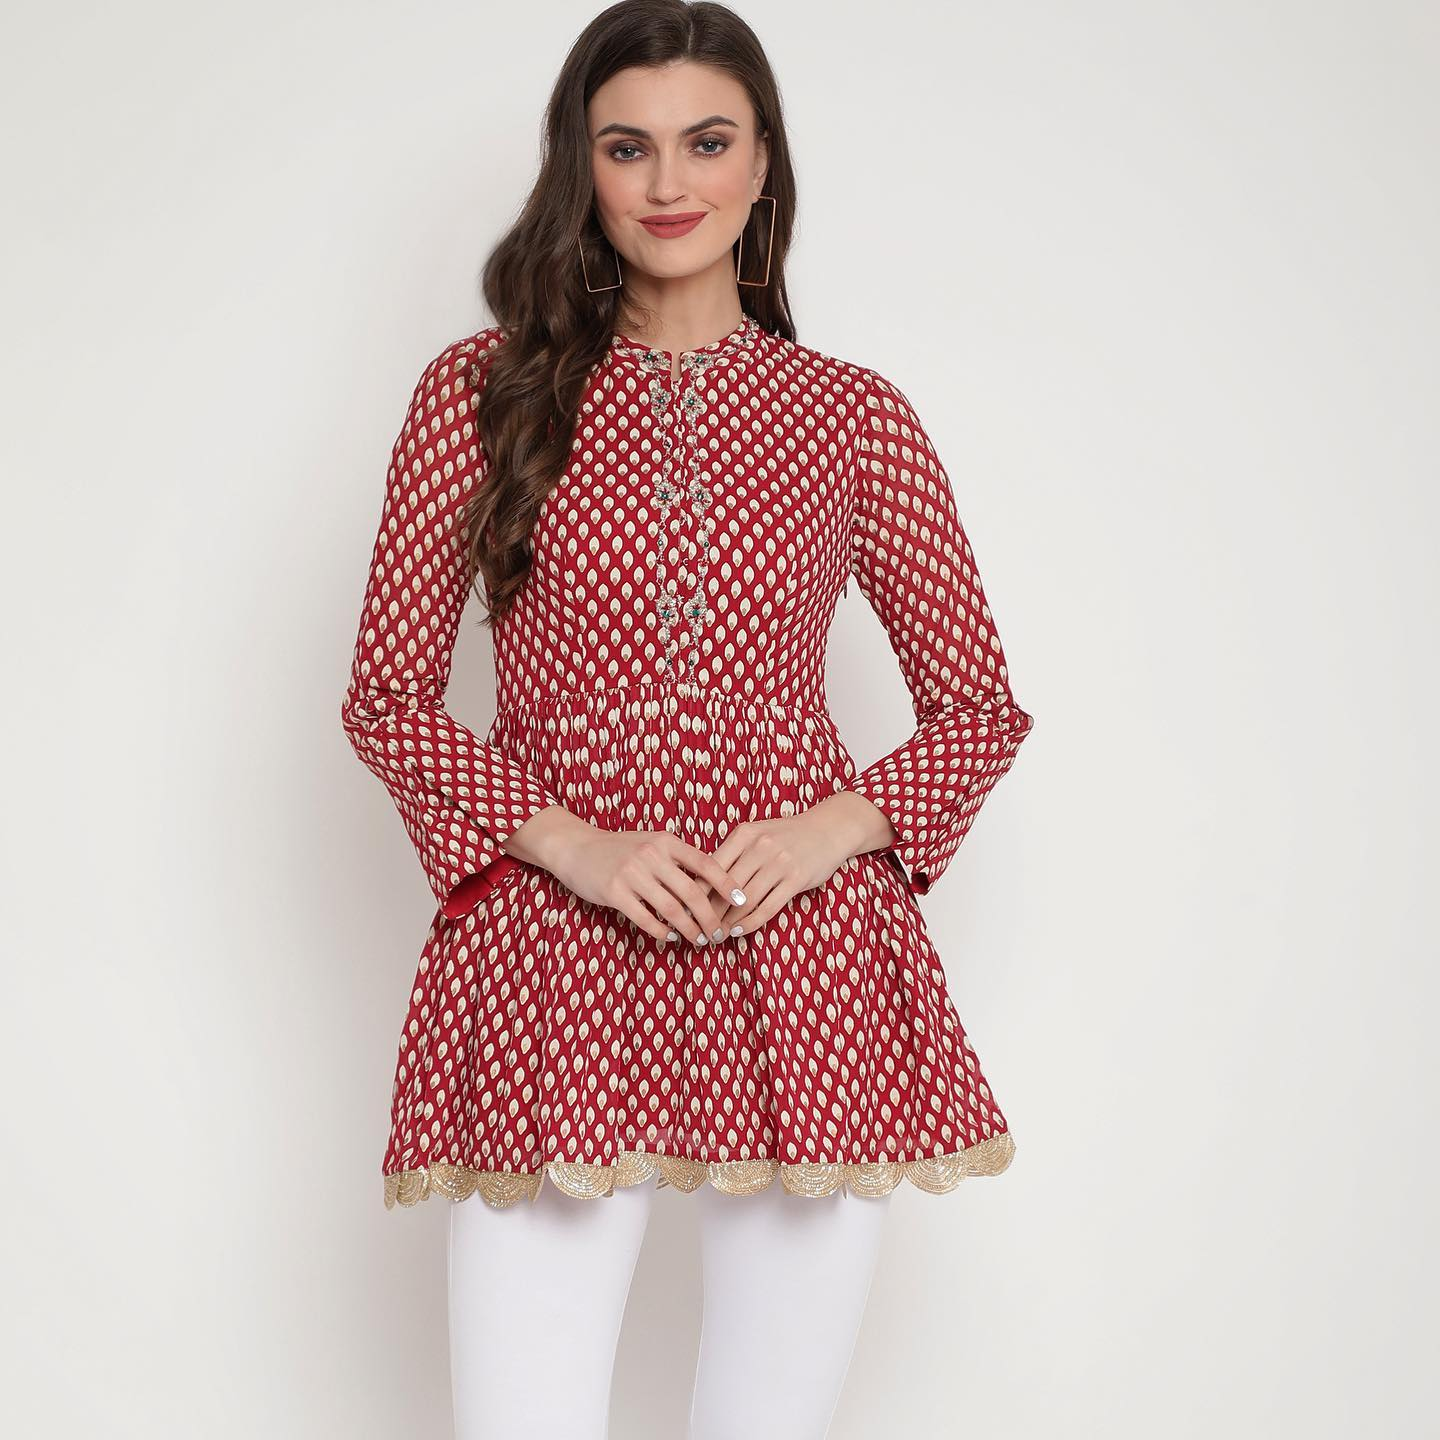 DEMURE . P R E T 2021. . Red bindu print peplum top with embroidered front and neckline.  2021-05-15